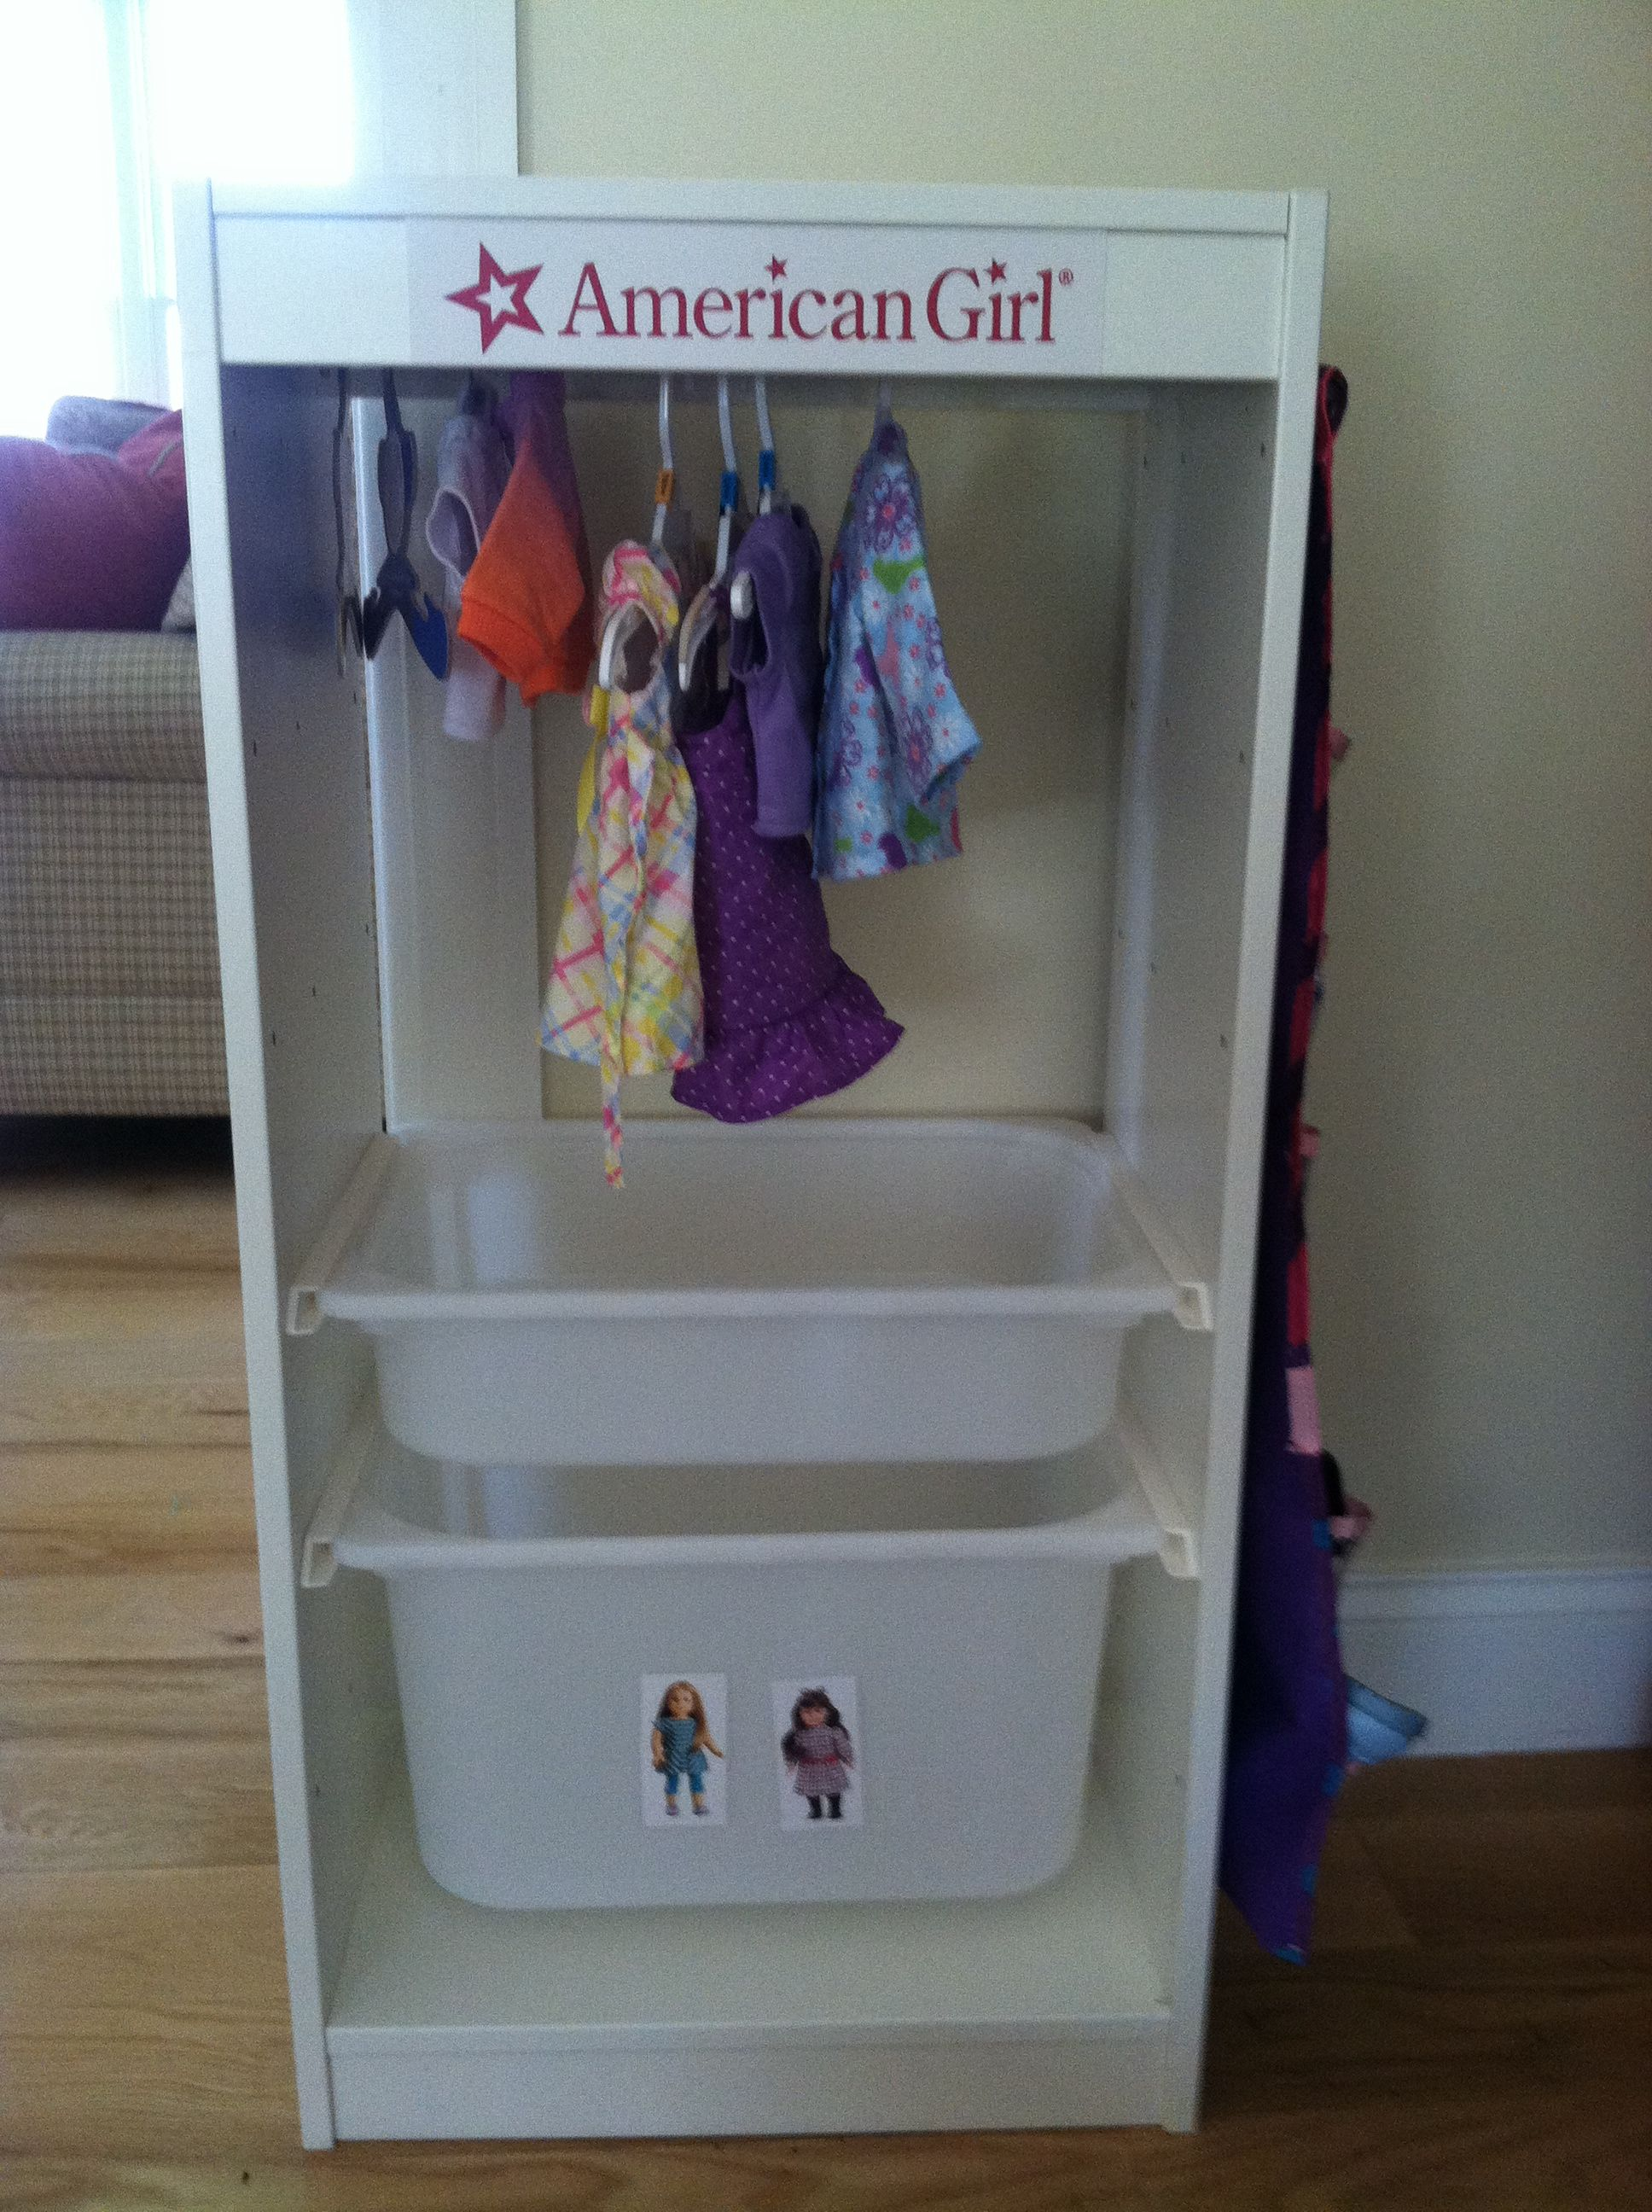 American Girl Doll Closet Doll Storage American Girl Doll Furniture American Girl Doll House